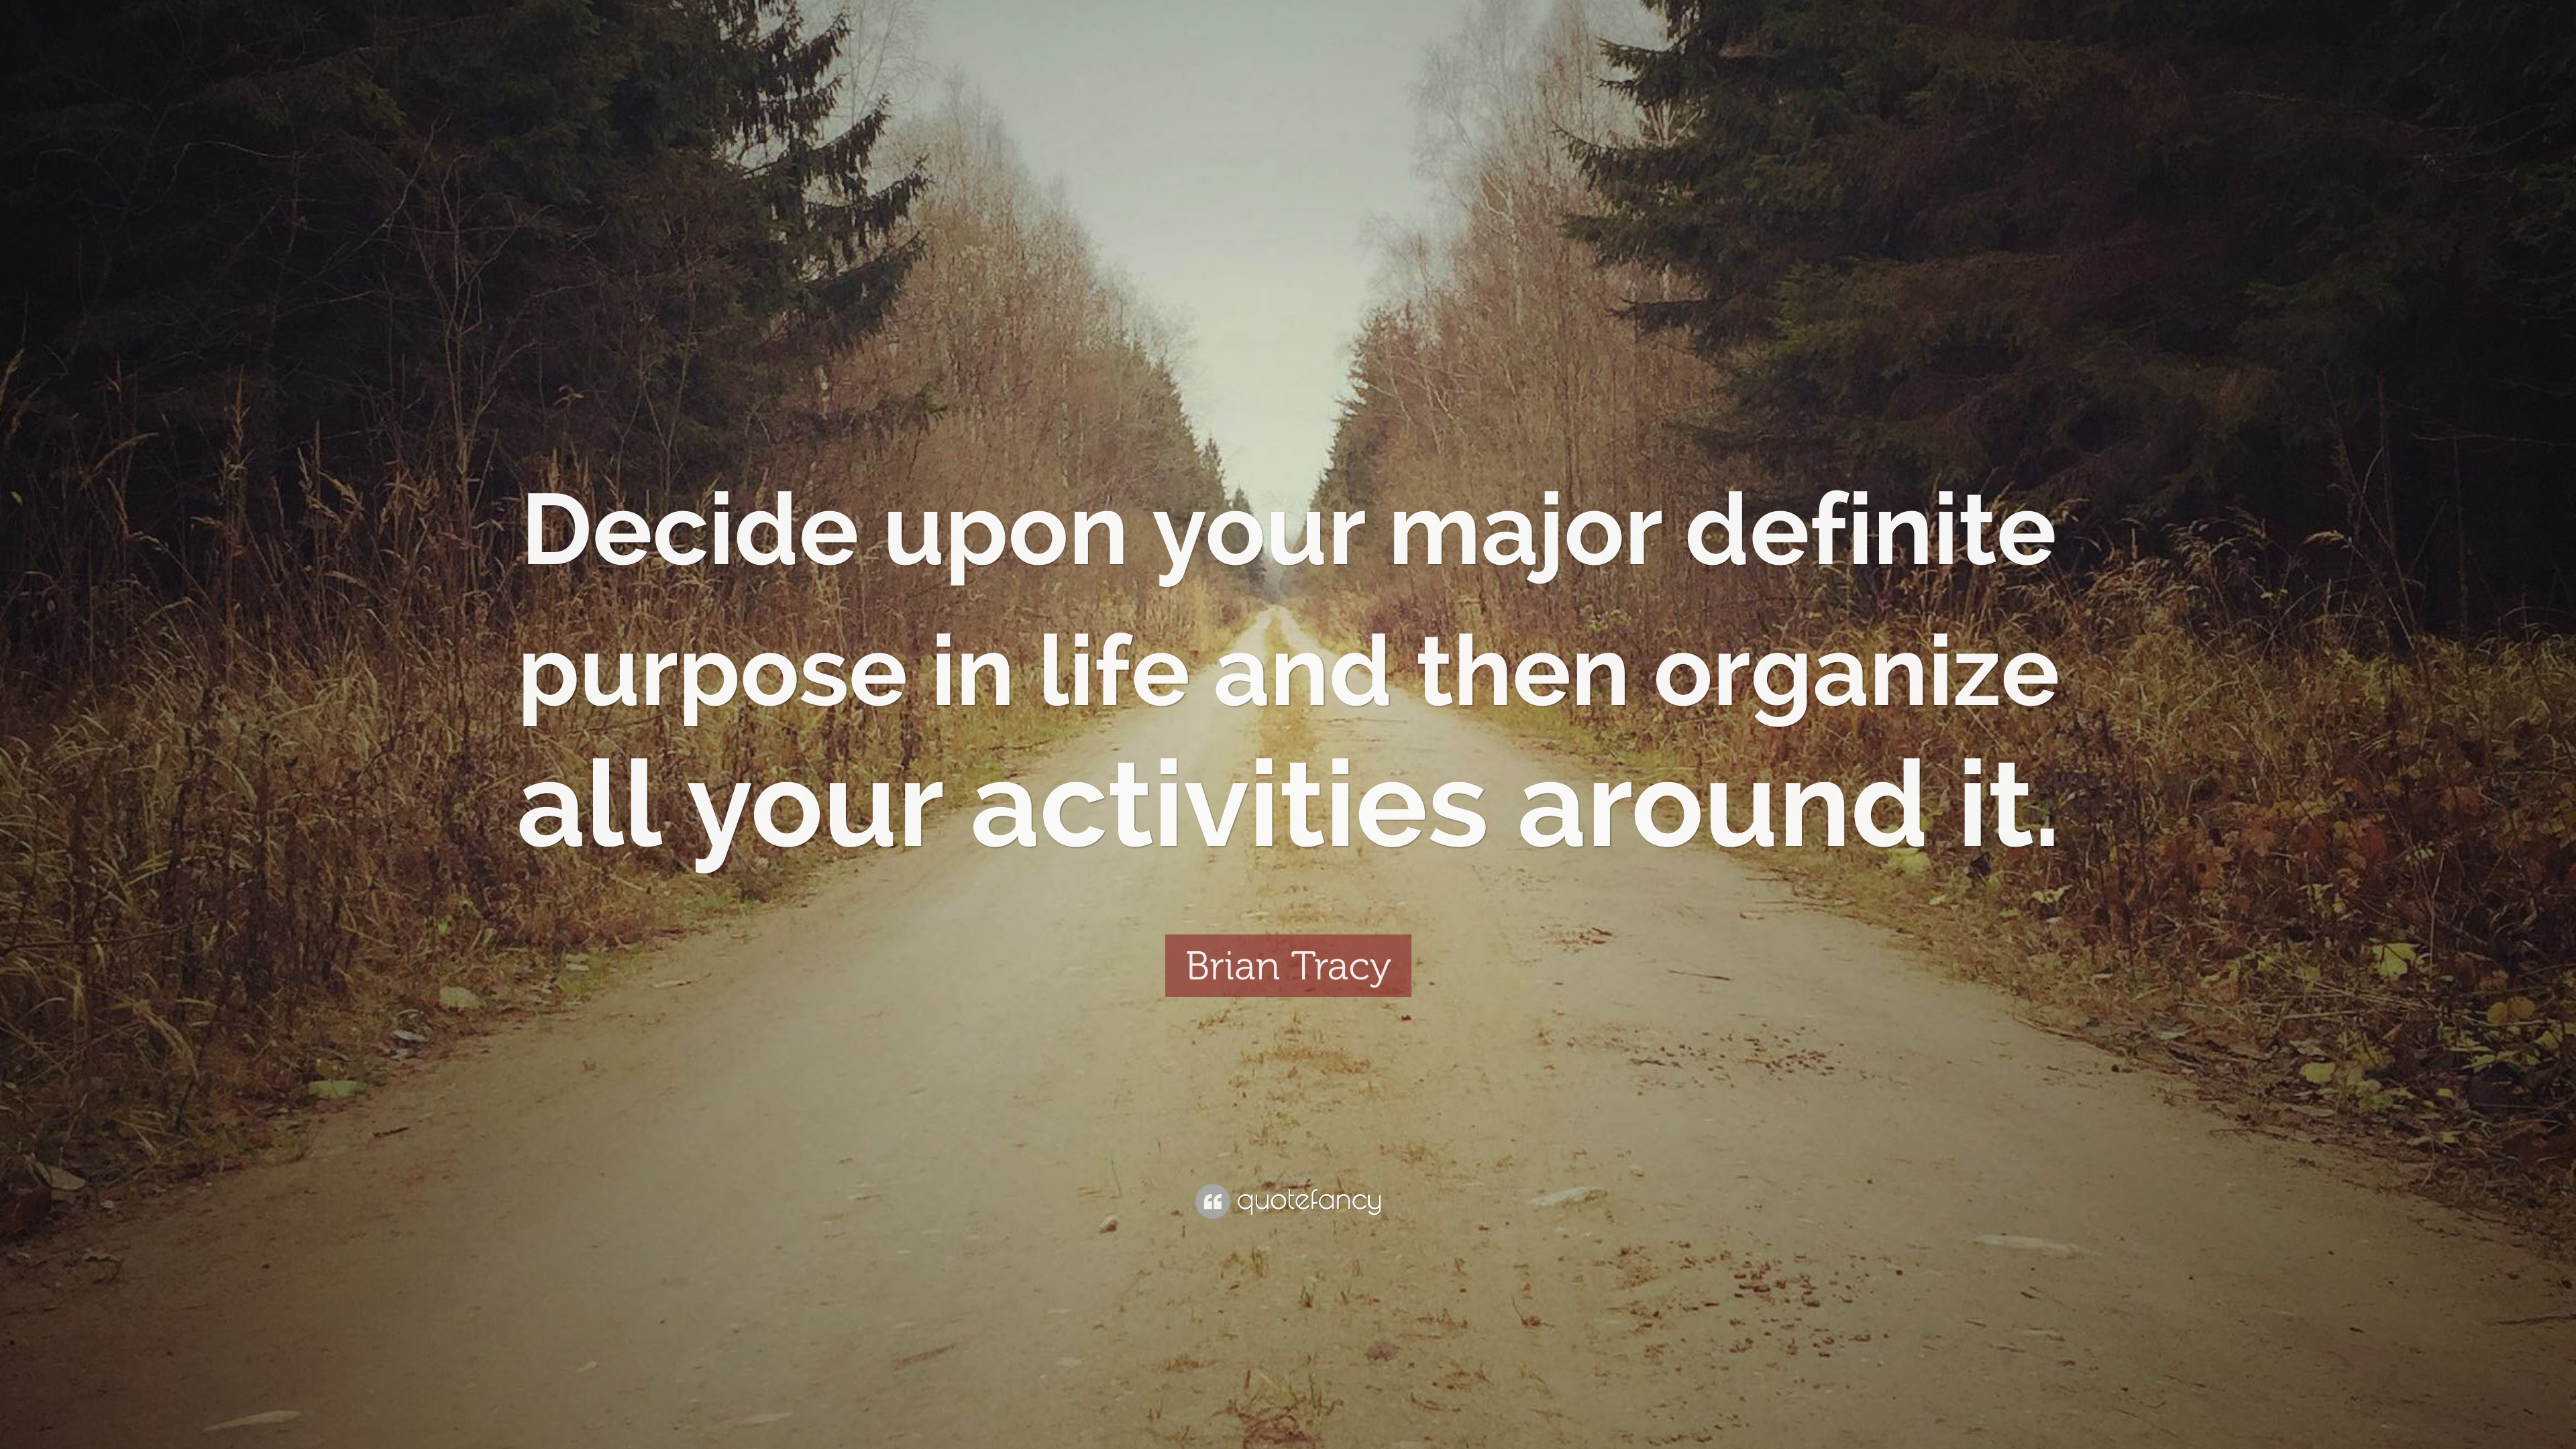 brian tracy quote decide upon your major definite purpose in brian tracy quote decide upon your major definite purpose in life and then organize